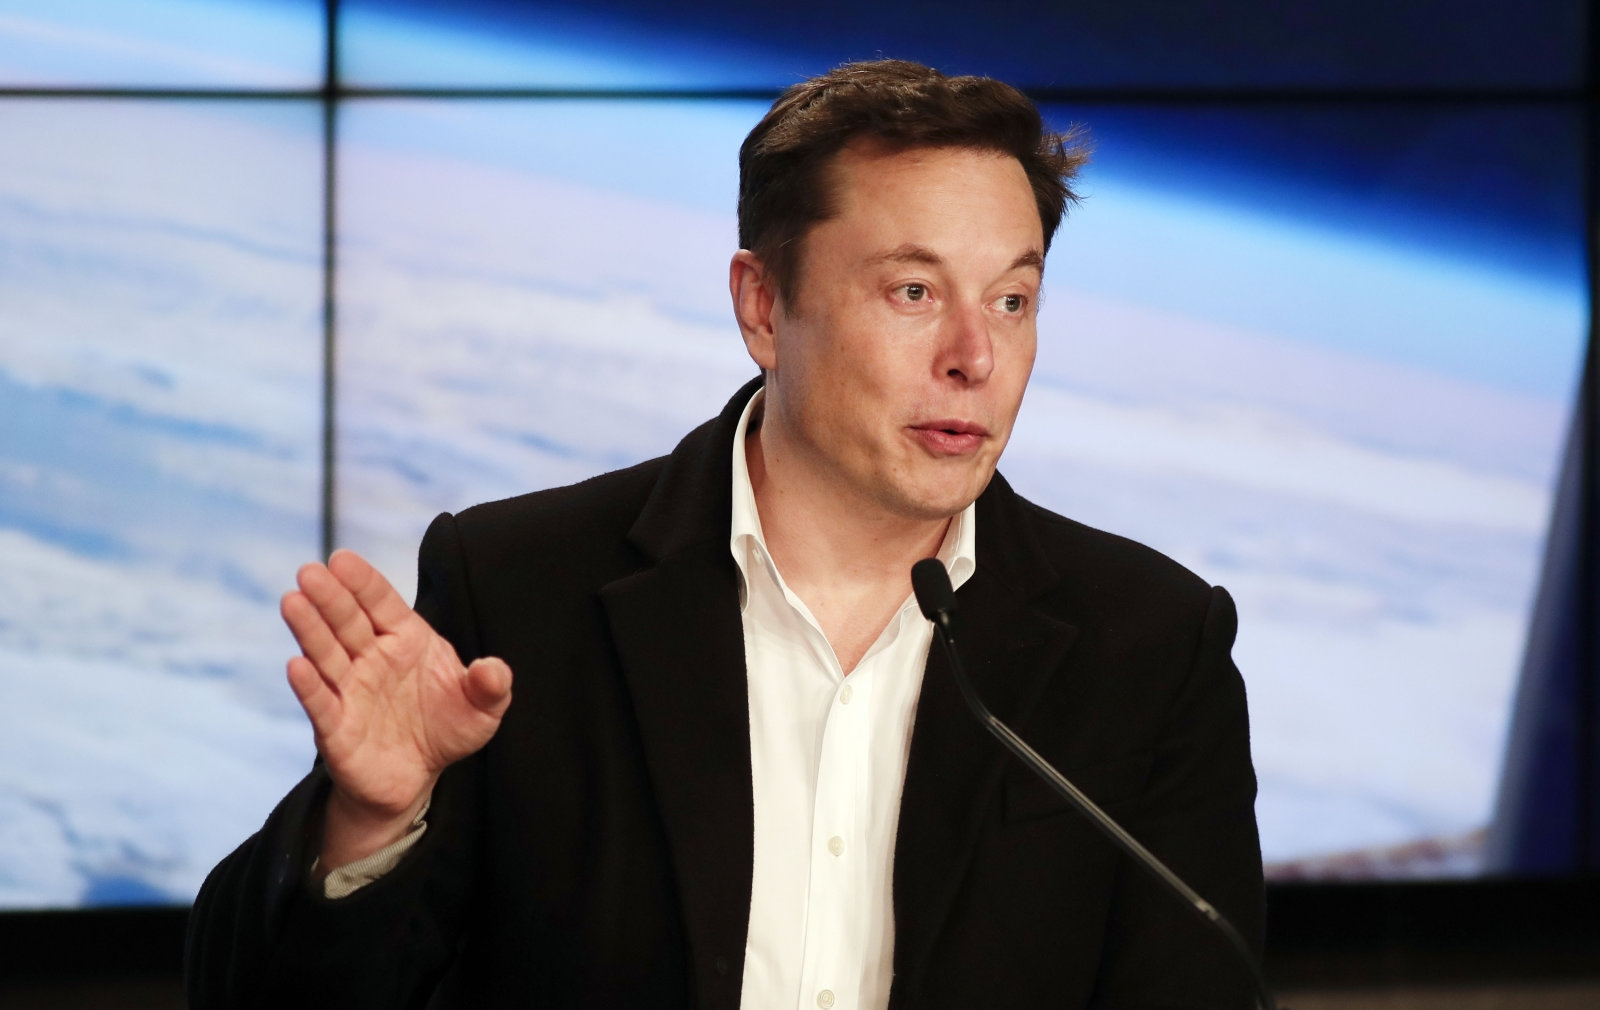 Elon Musk shows SpaceX's first internet satellites ready for launch | DeviceDaily.com